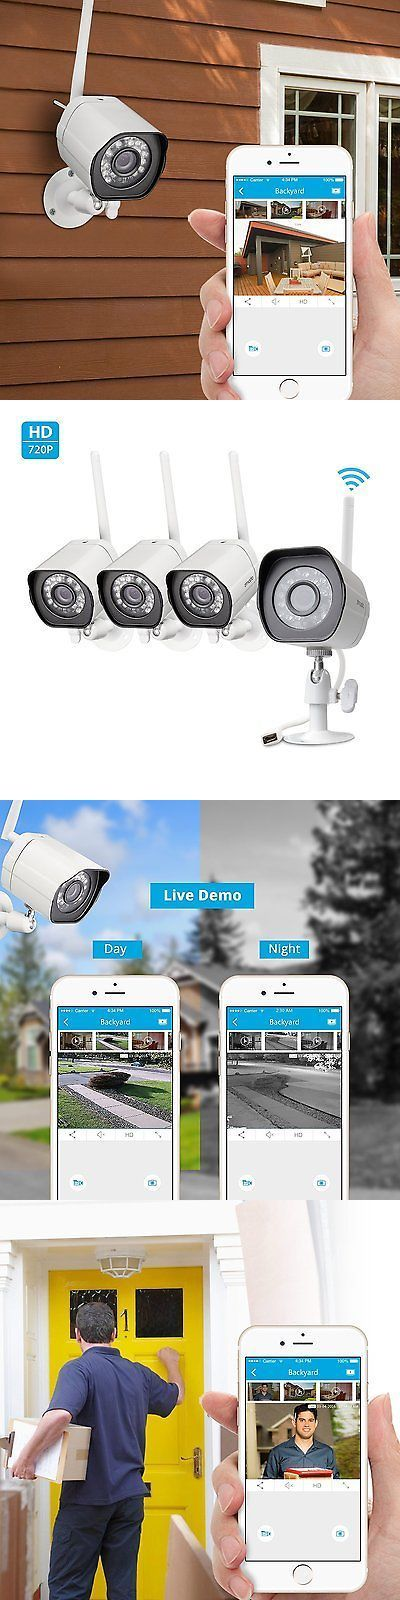 Security Cameras: Zmodo Smart Wireless Security Cameras- 4 Pack- Hd Indoor/Outdoor Wifi Ip Cameras BUY IT NOW ONLY: $119.96